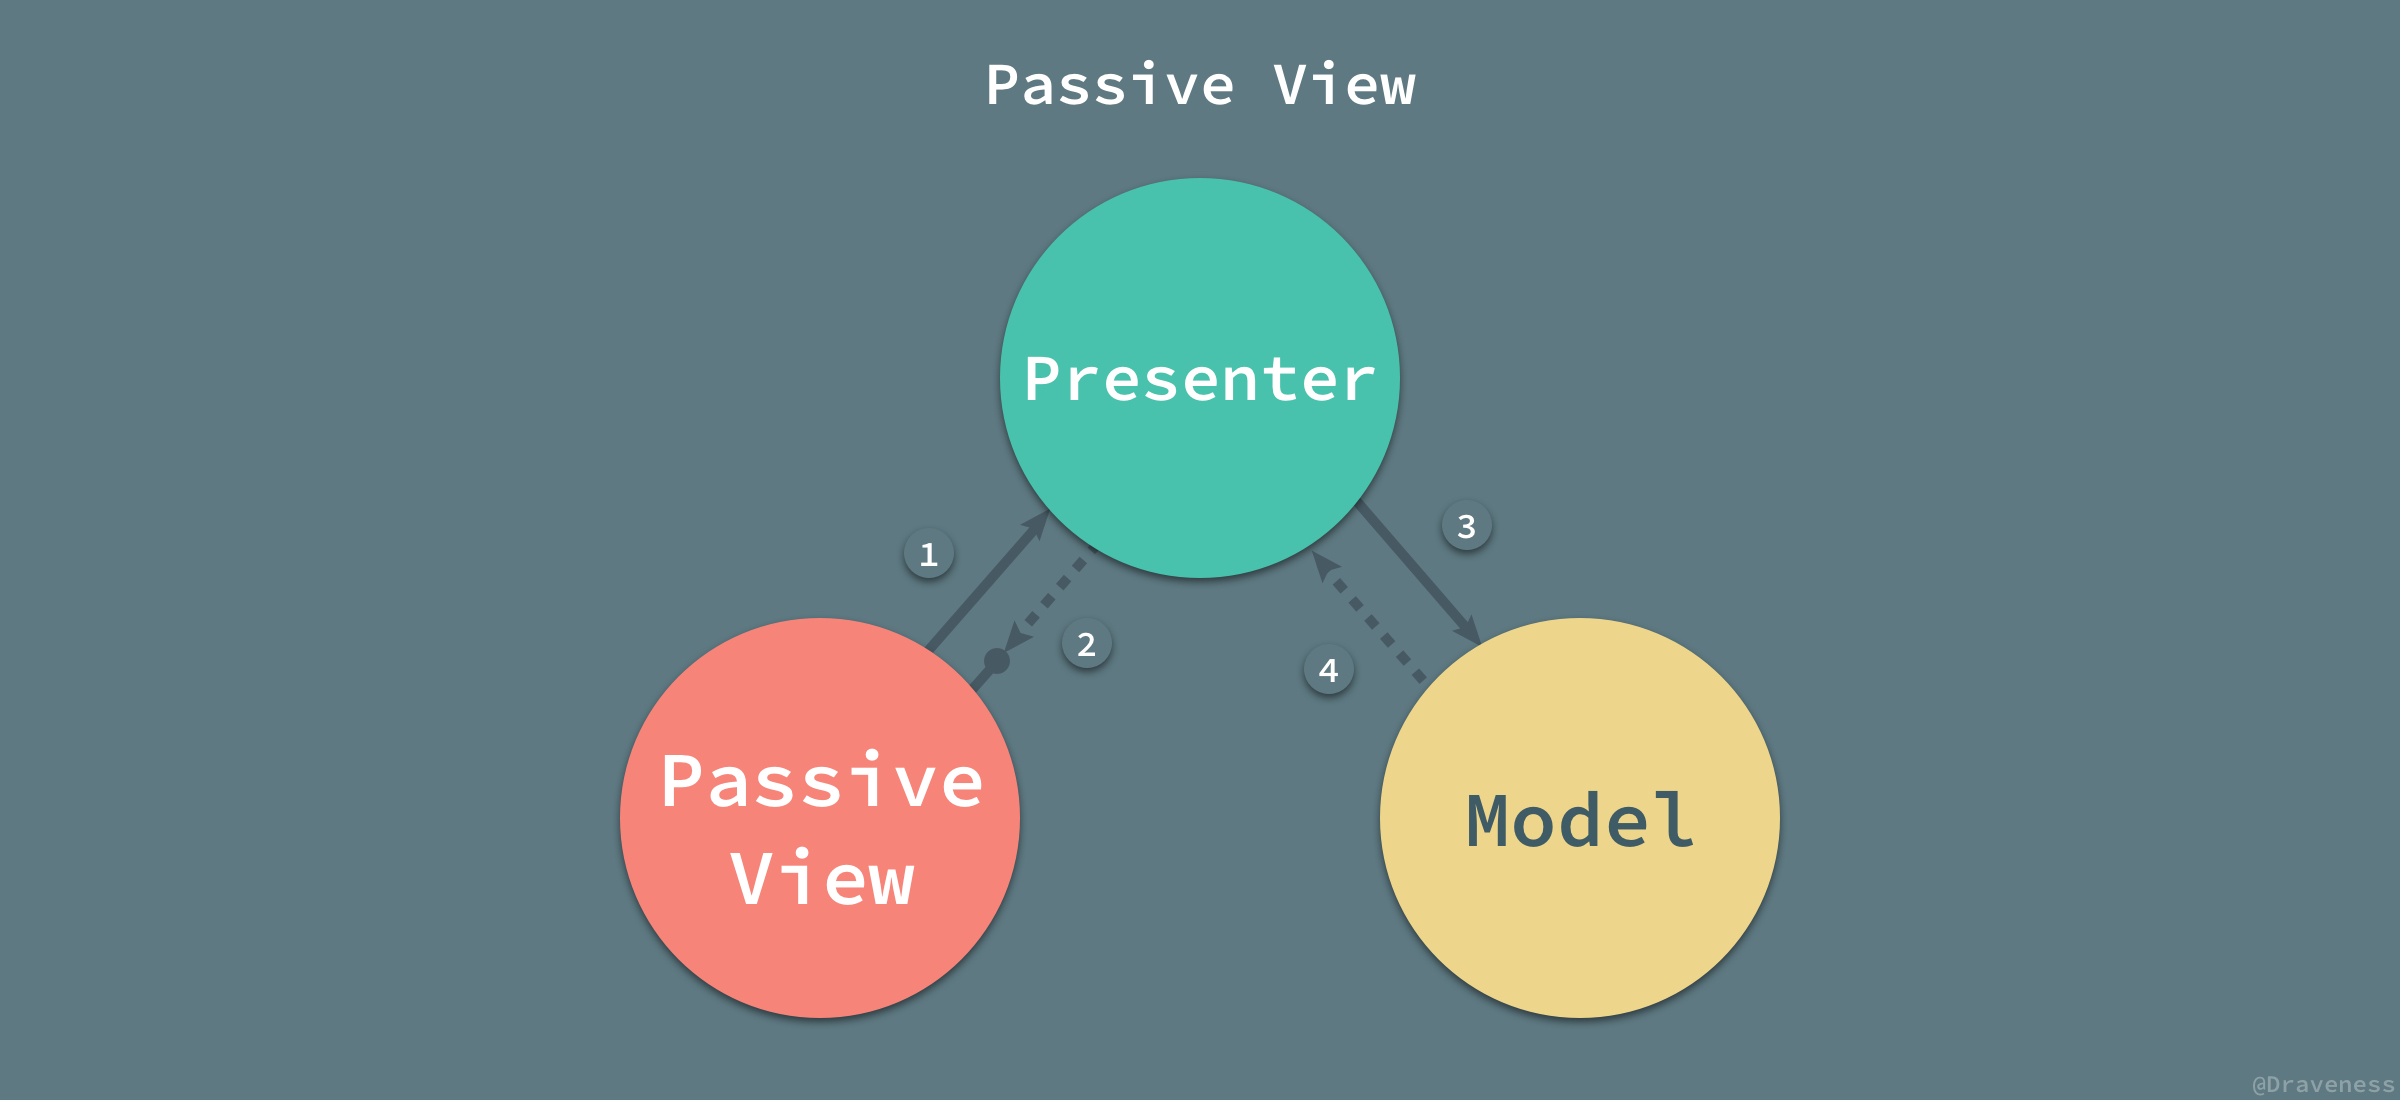 Passive-View-with-Tags